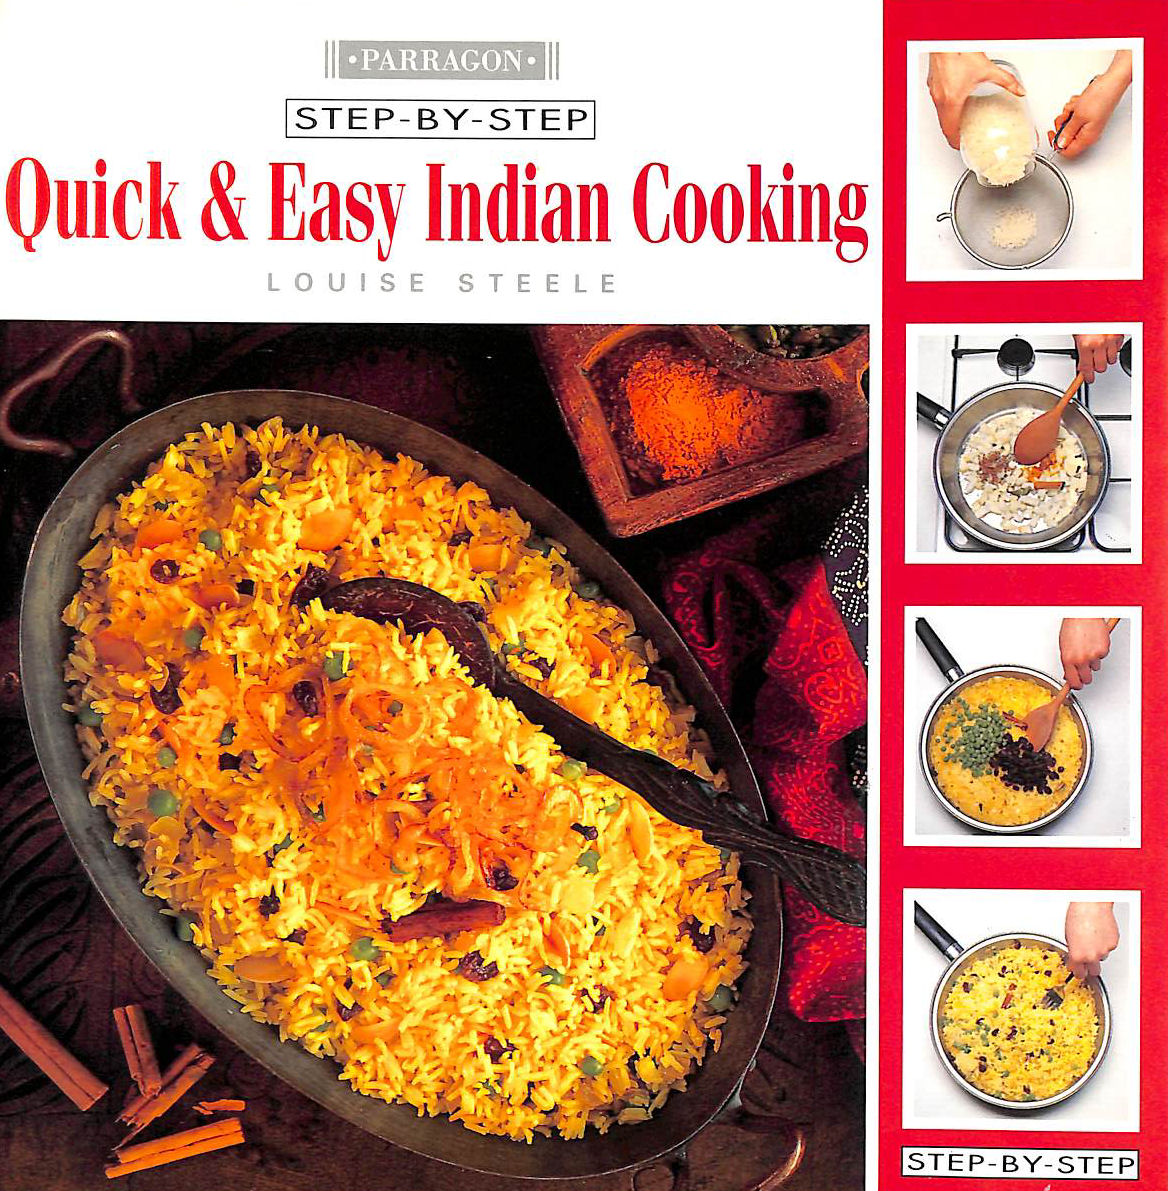 Image for Quick & Easy Indian Cooking